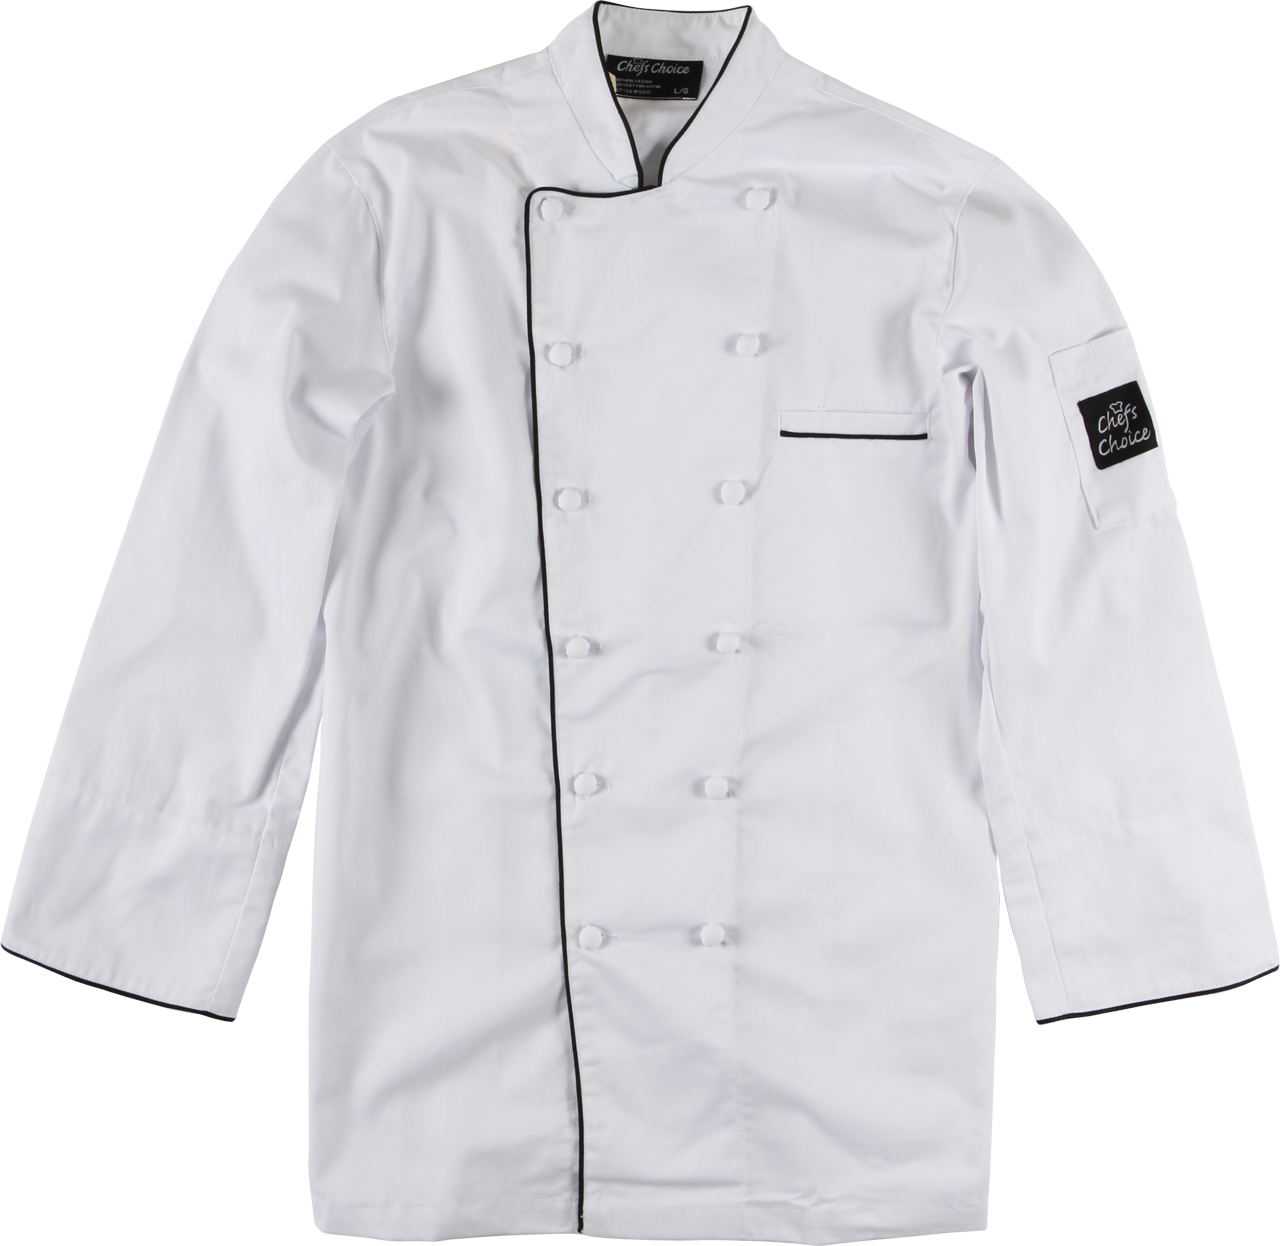 5f7828a893d Picture of Premium Uniforms Master Chef Coat